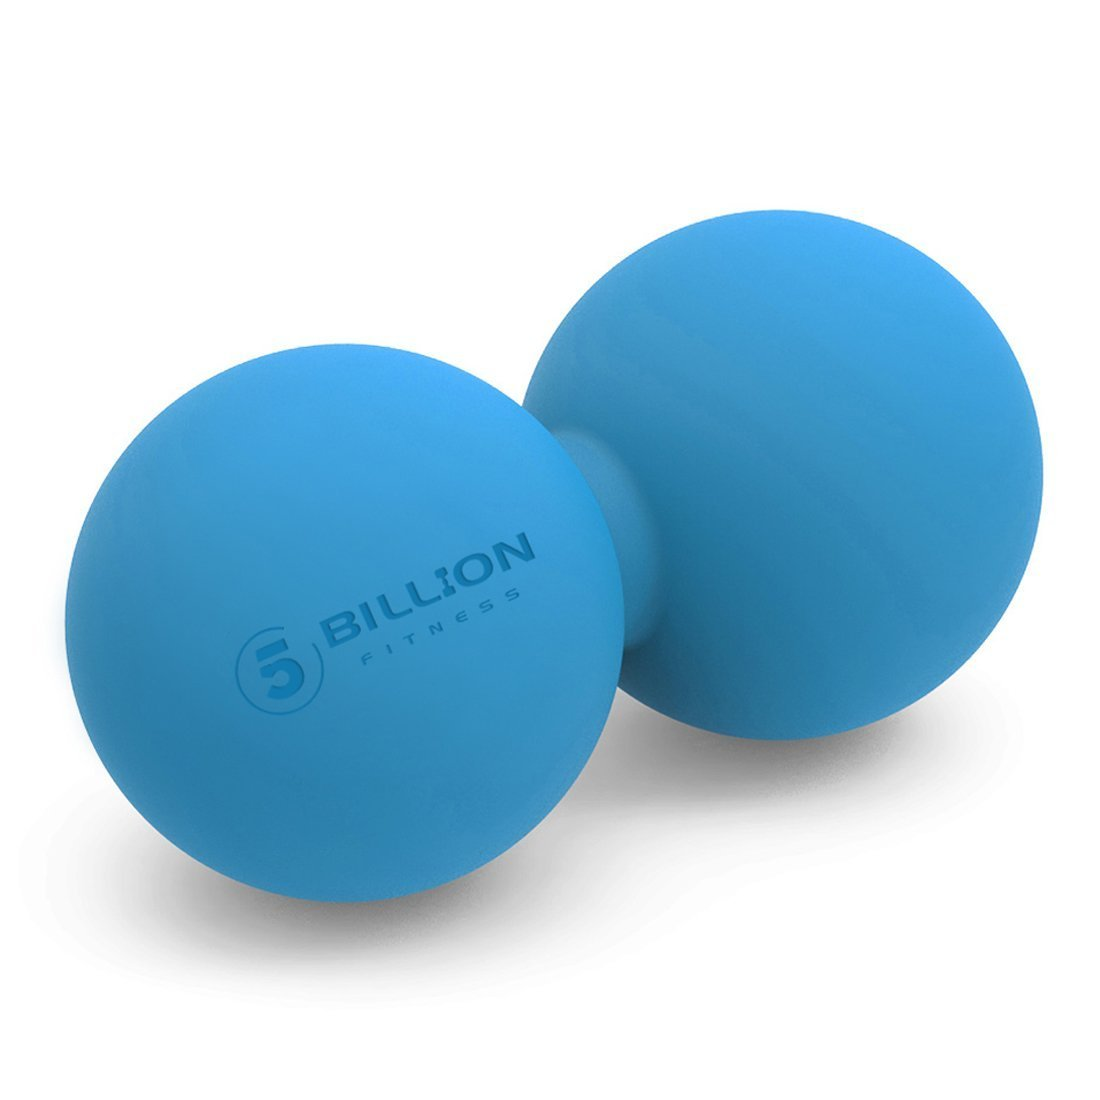 5BILLION Therapie Massage Ball - Doppel Massage Peanut Ball & Mobility Ball für Körperliche Therapie - Hochdichte Massage-Tool für Deep Tissue, Myofascial Release, Muskel Entspannen, Accupoint Massage Accupoint Massage (Blau) 5BILLION FITNESS